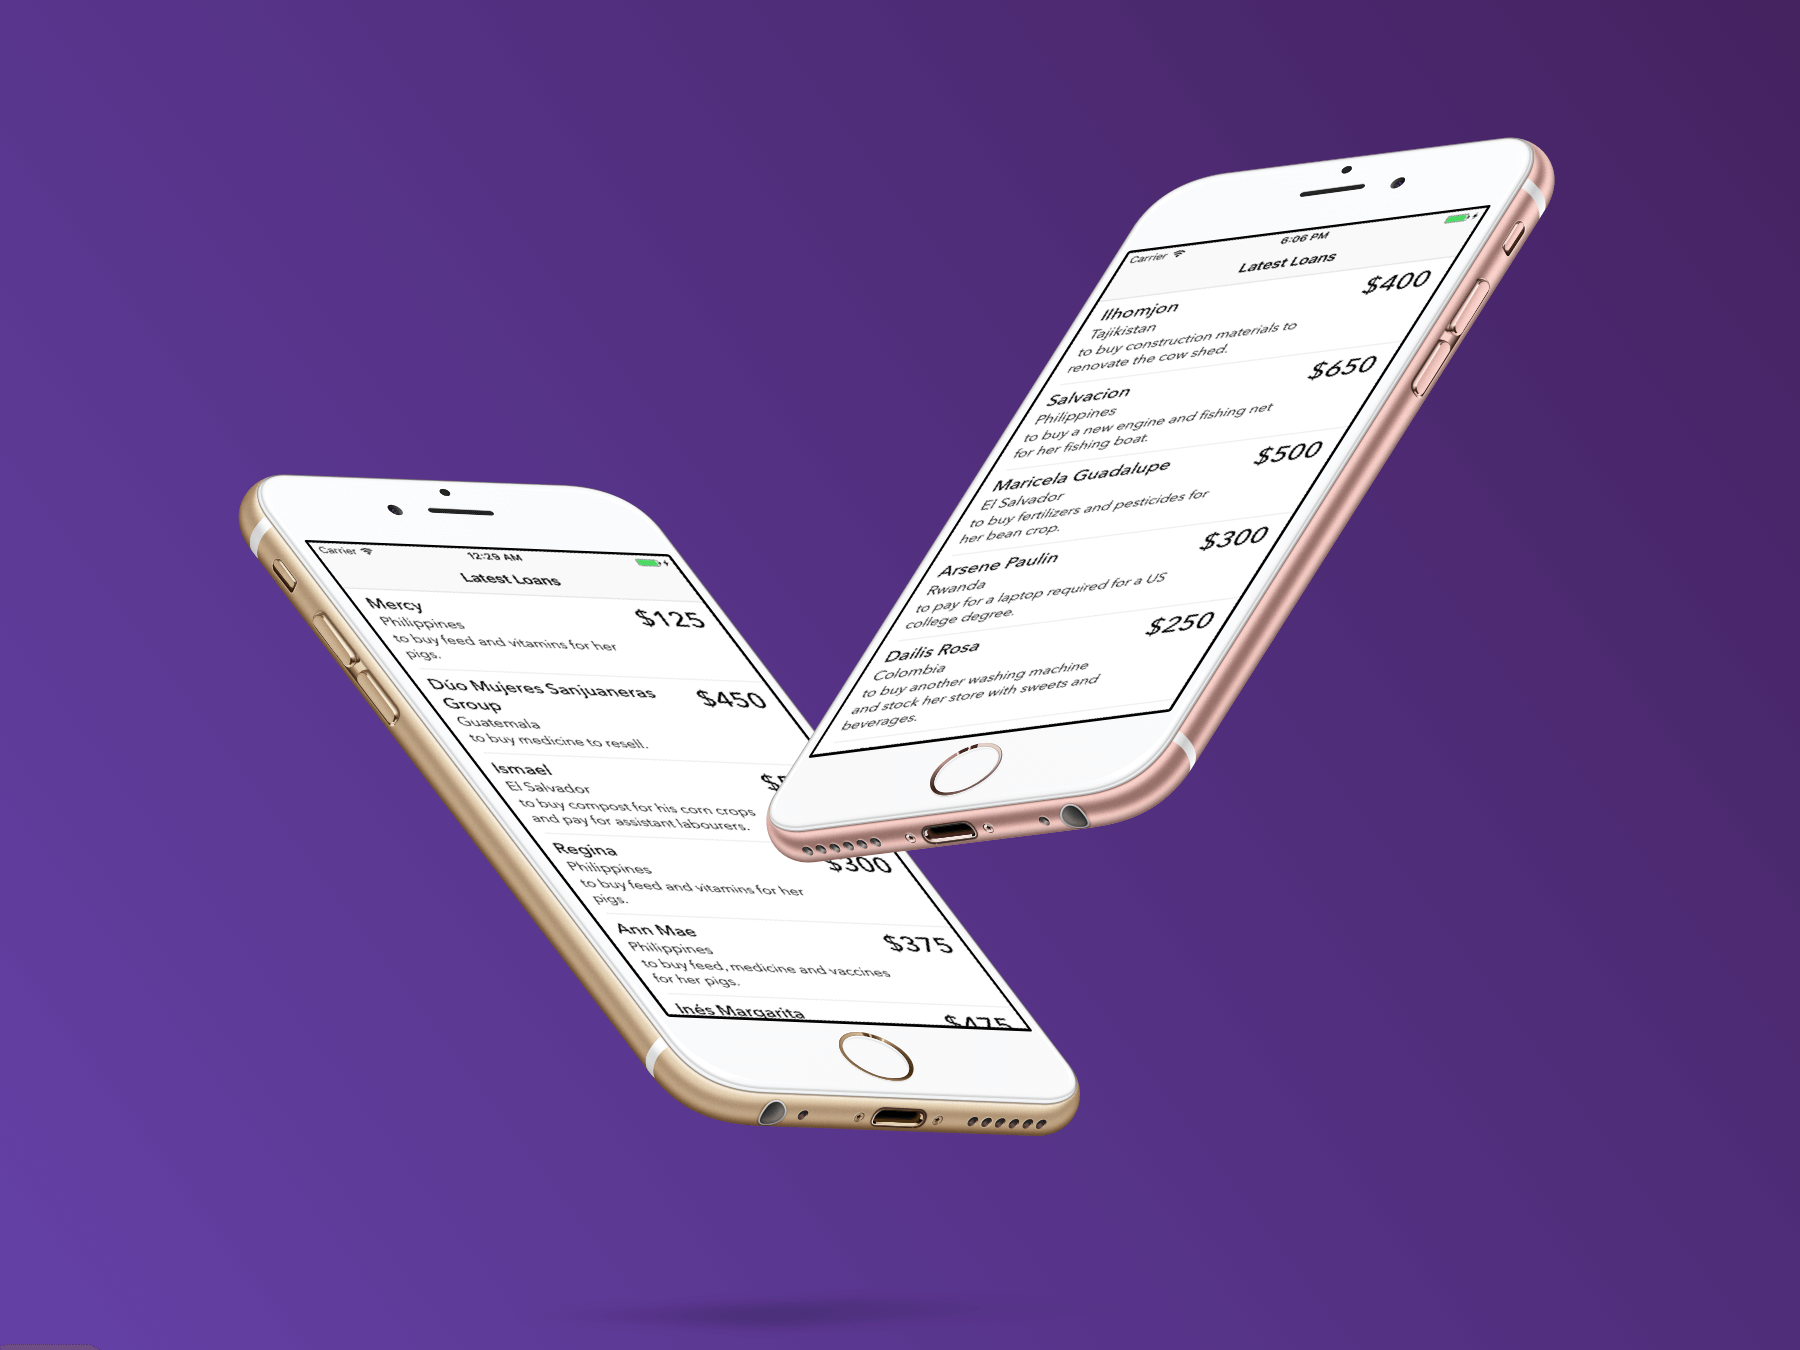 Working with JSON and Codable in Swift 5 - RapidAPI